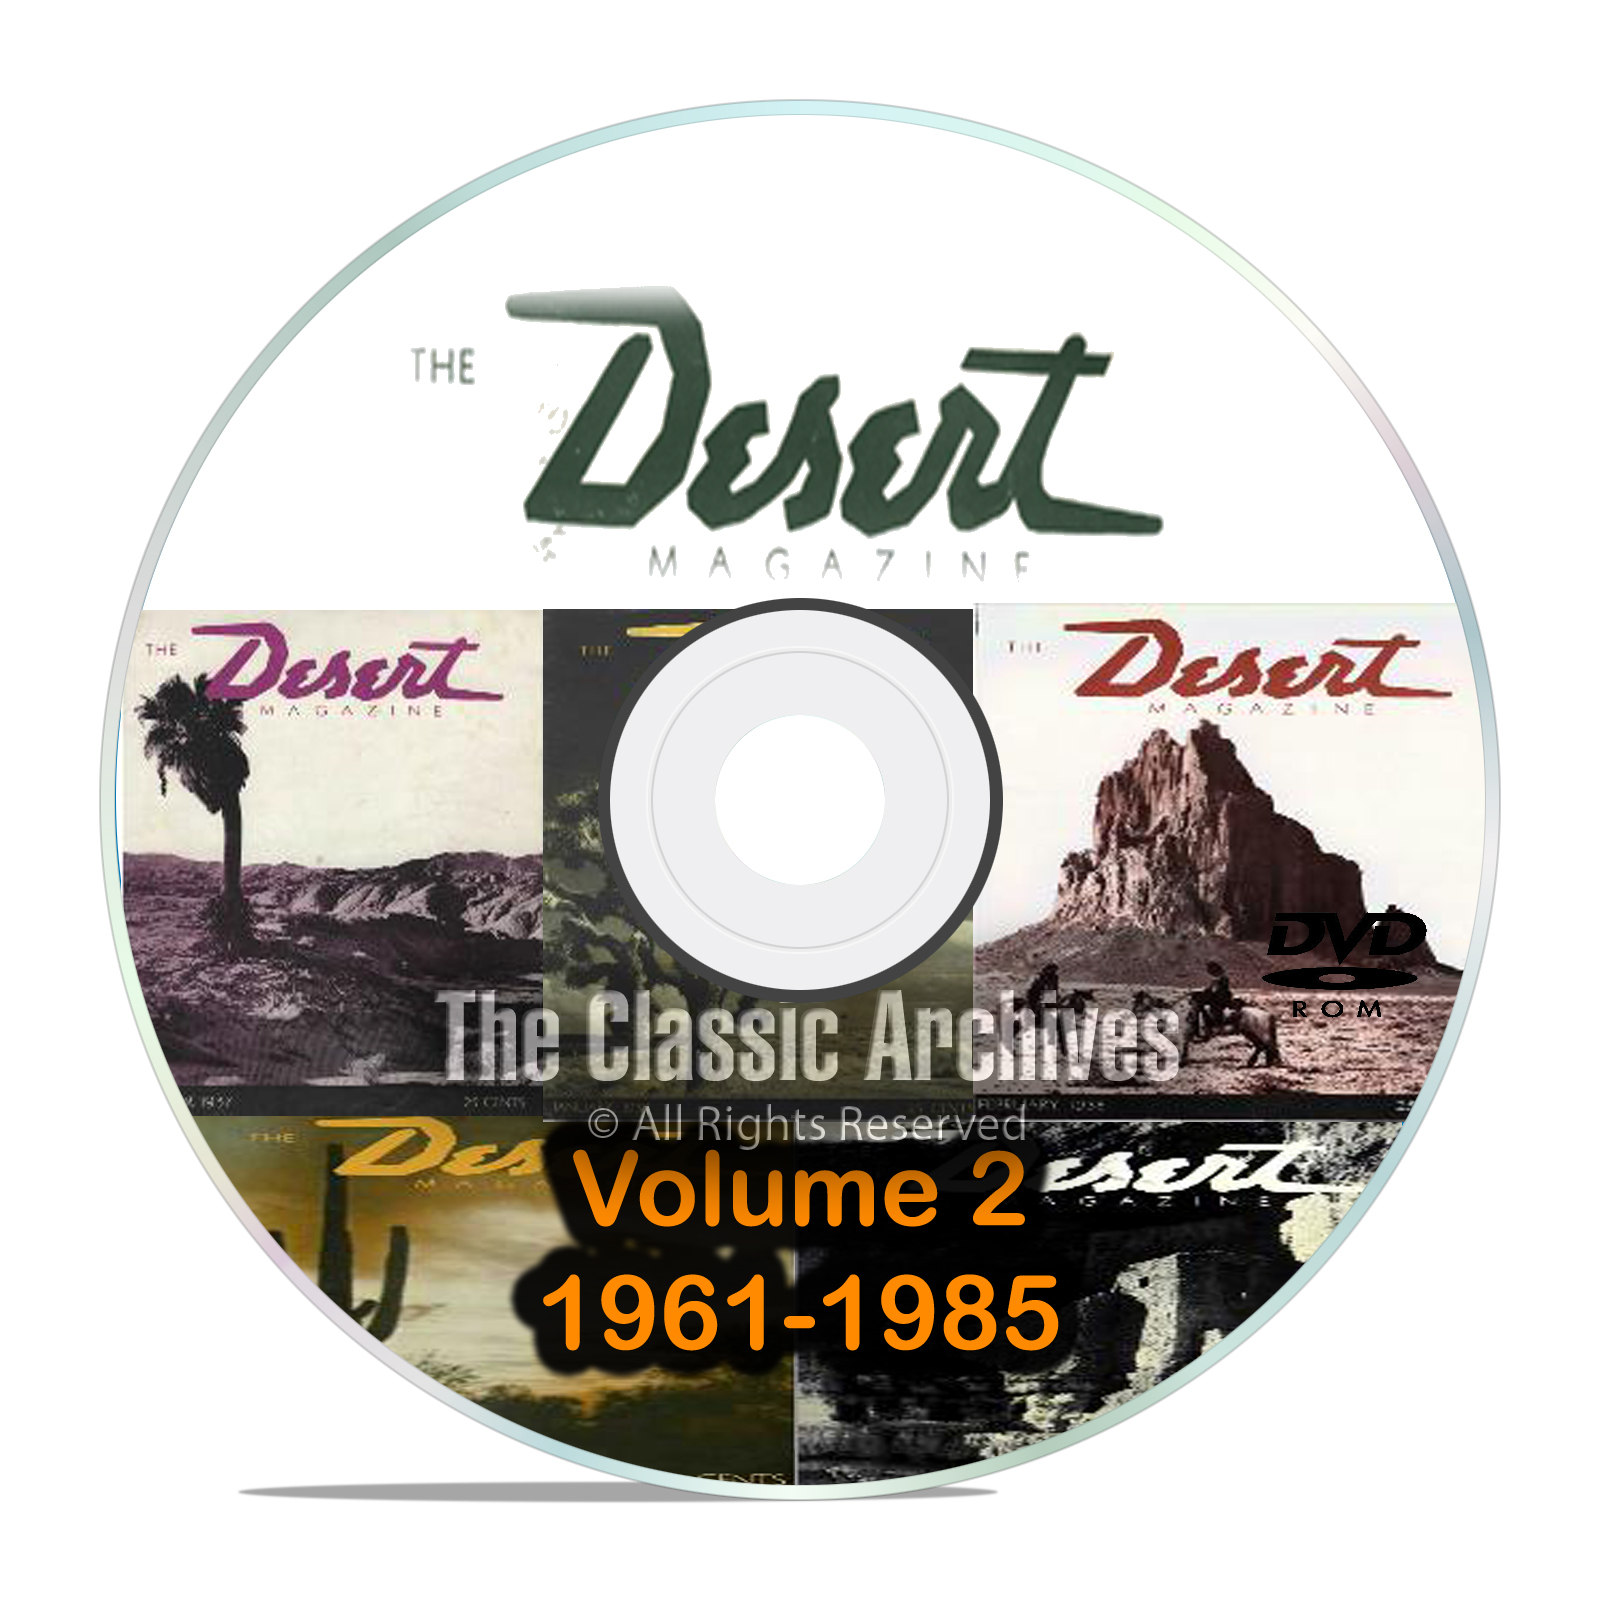 Desert Magazine, 1961-1985, Volume 2, Back Issues, Treasure Hunting DVD